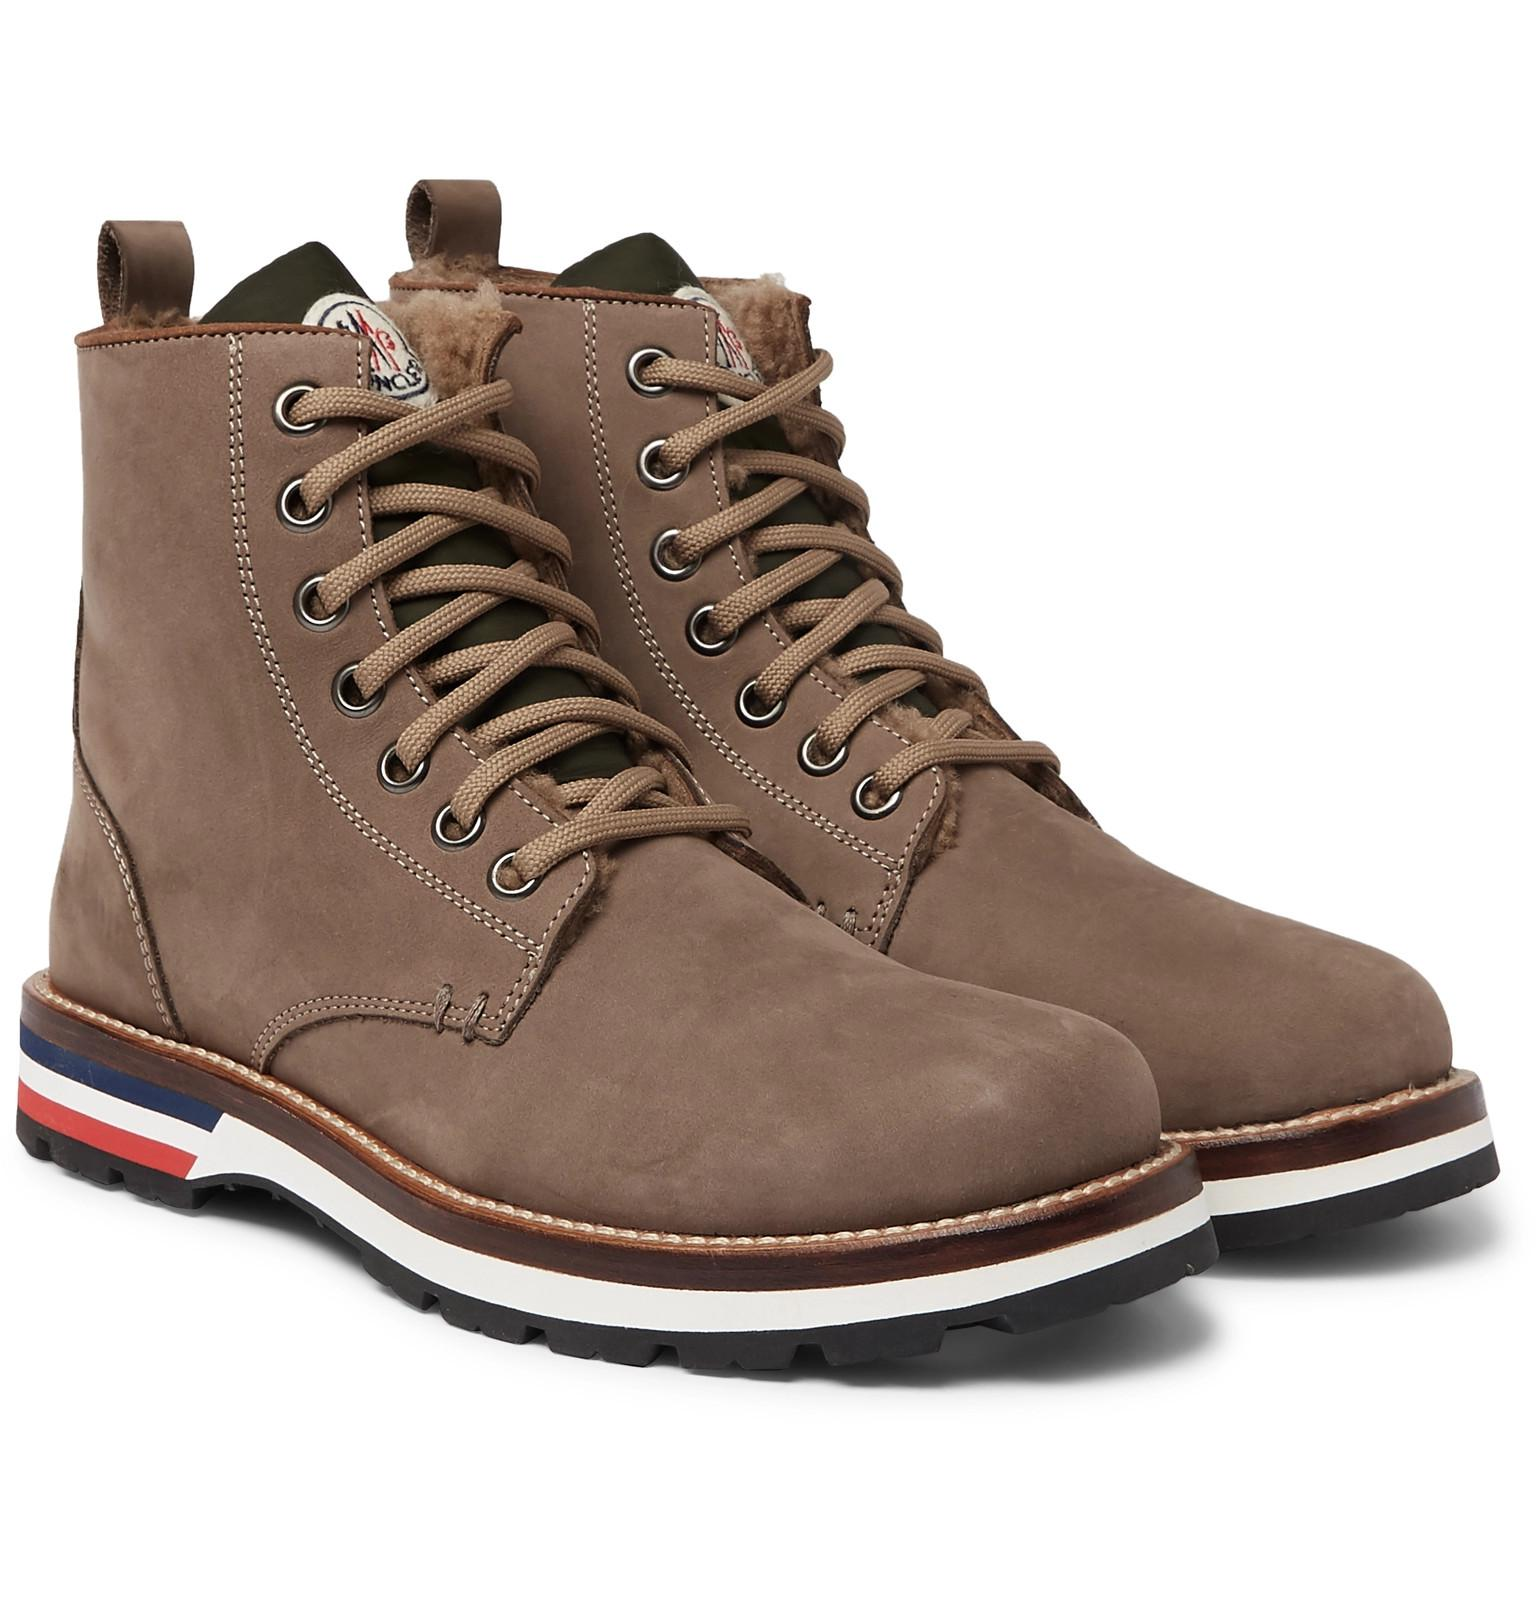 915de7aec039 Lyst - Moncler New Vancouver Shearling-lined Suede And Shell Boots ...